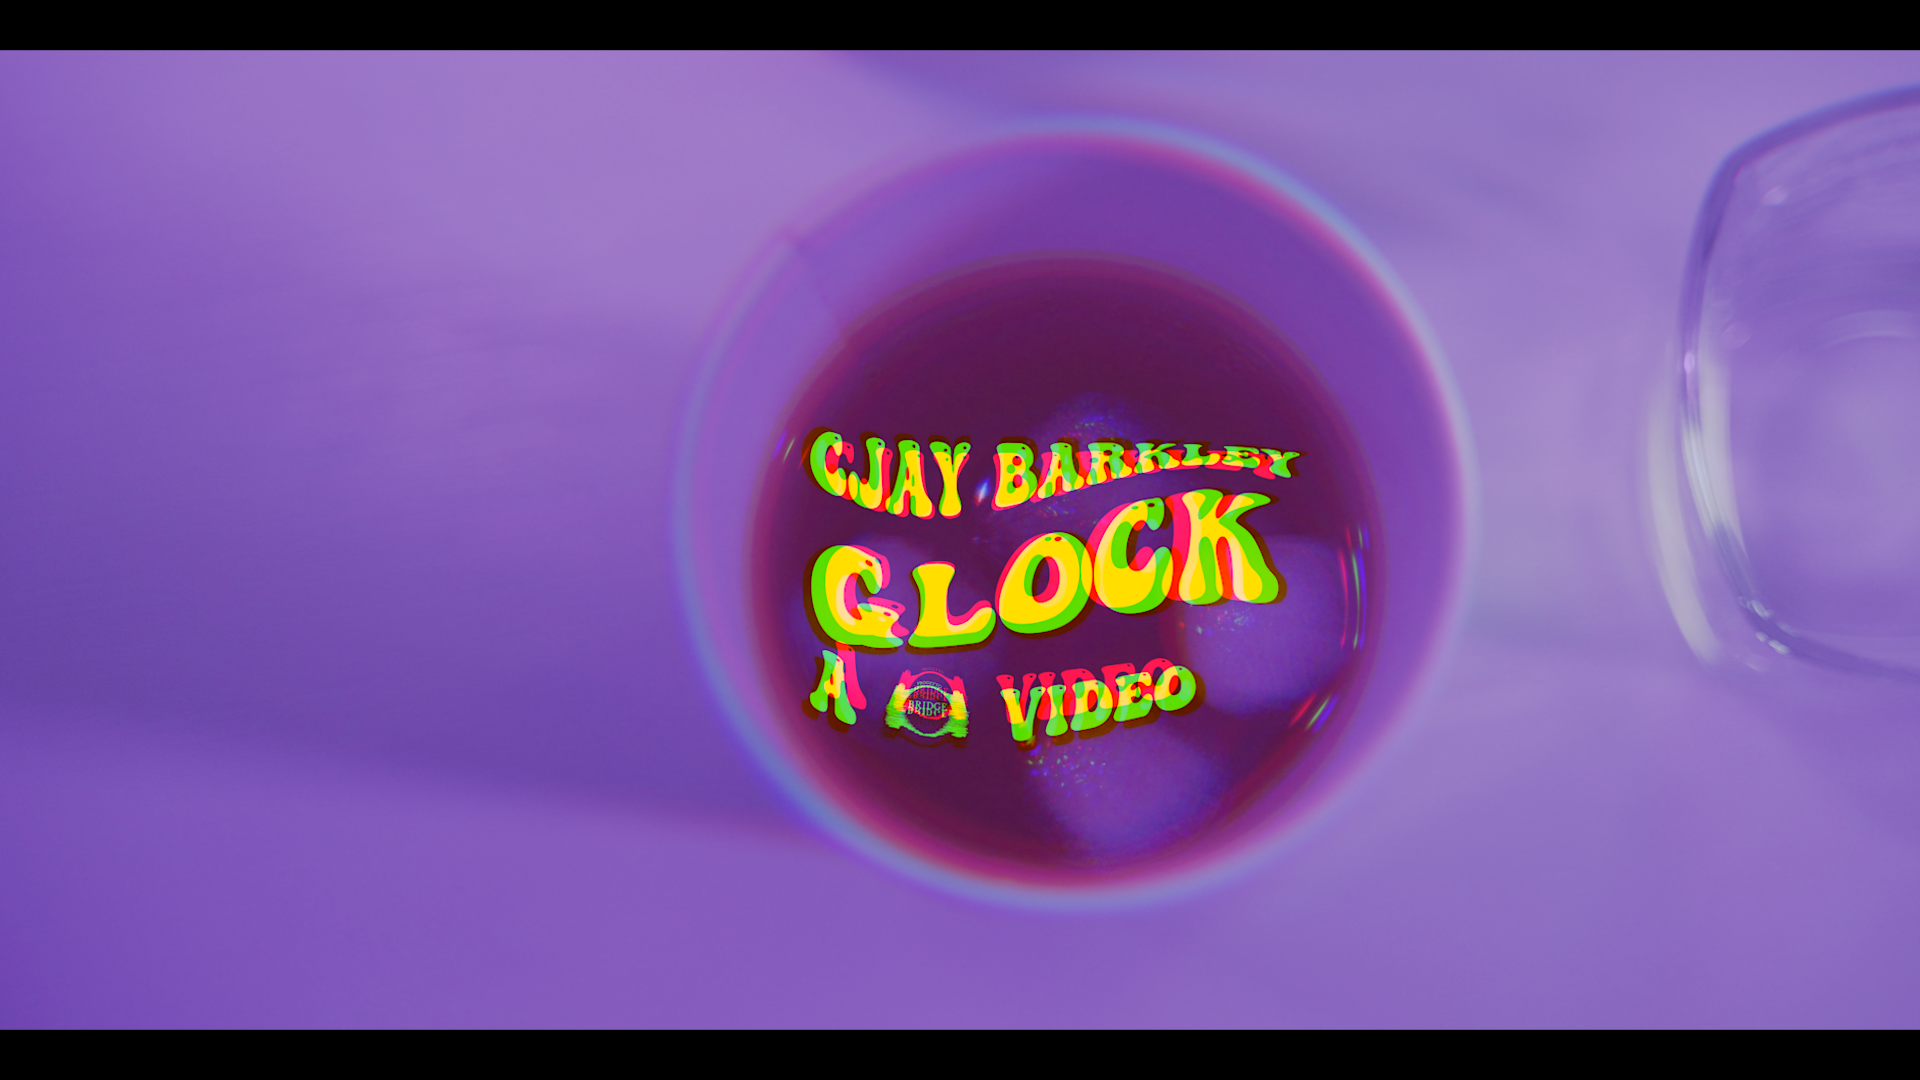 glock trap video cjay barkley